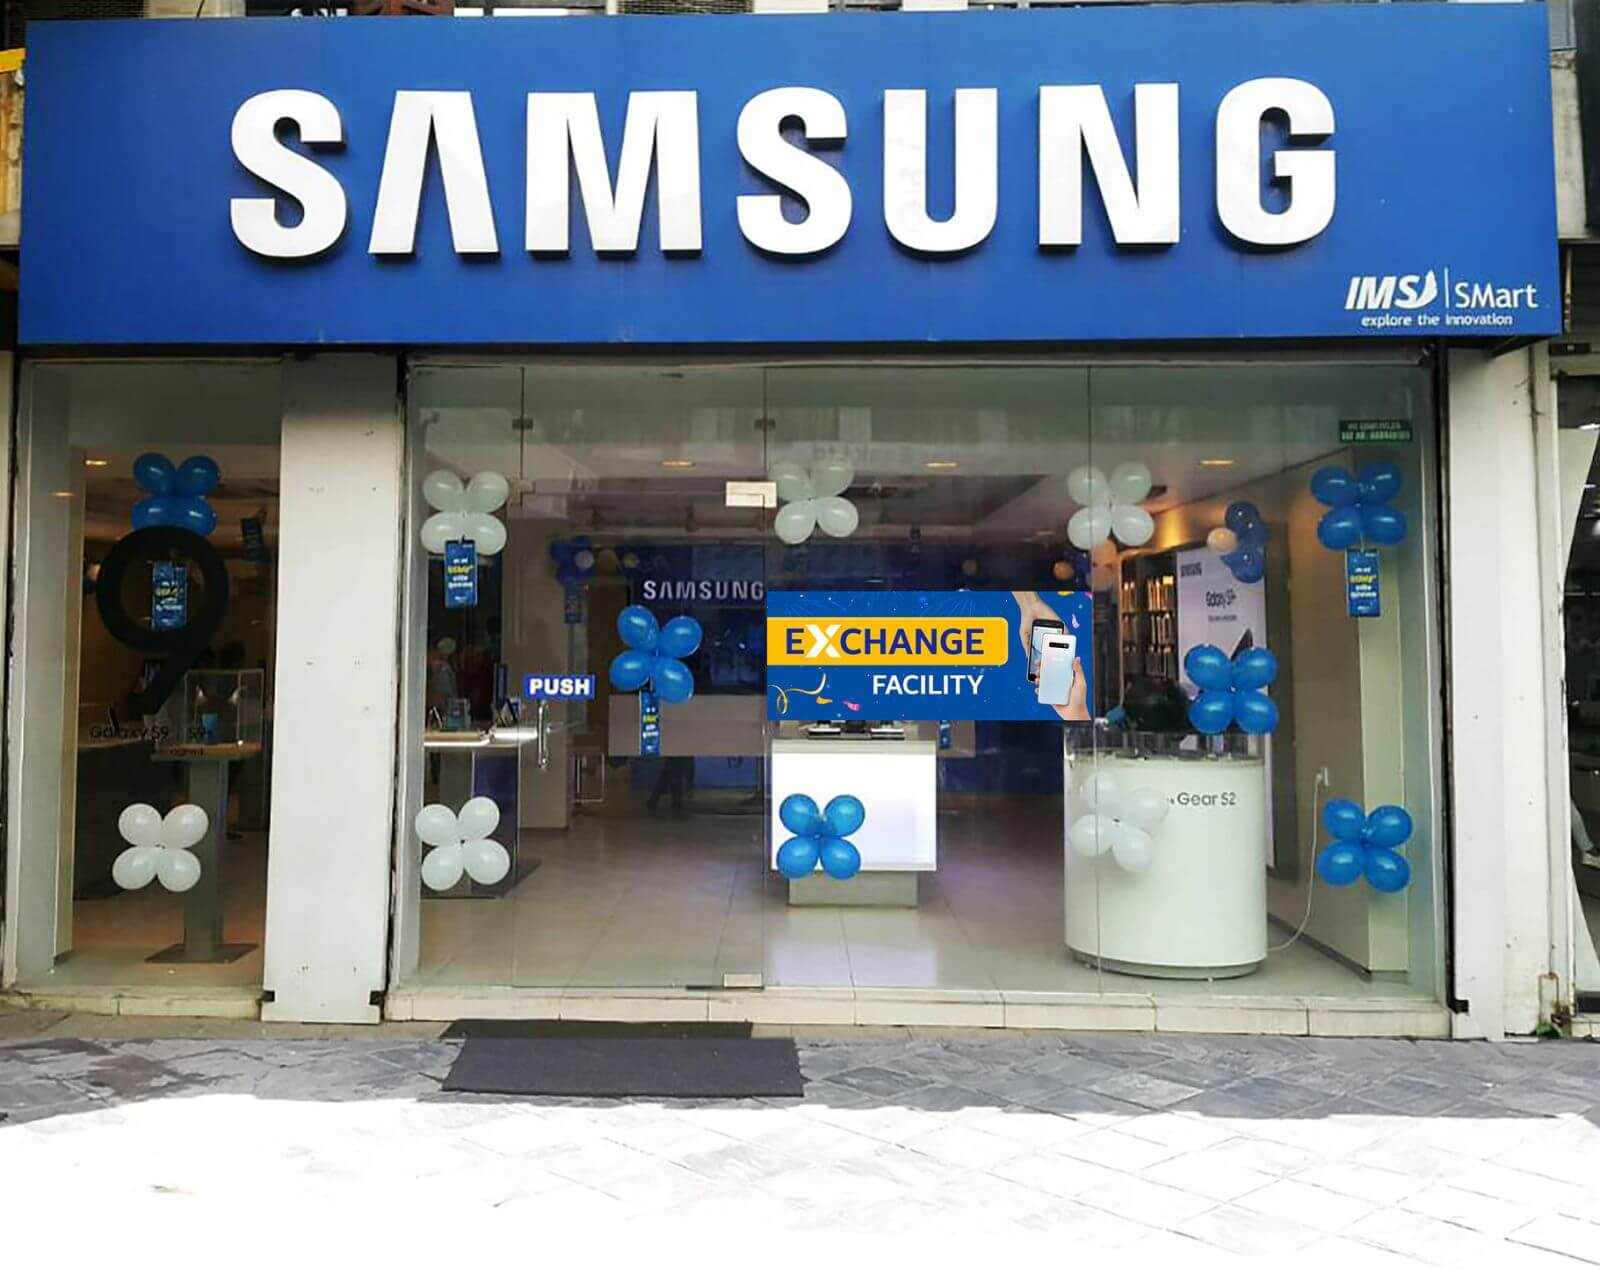 Samsung Exchange